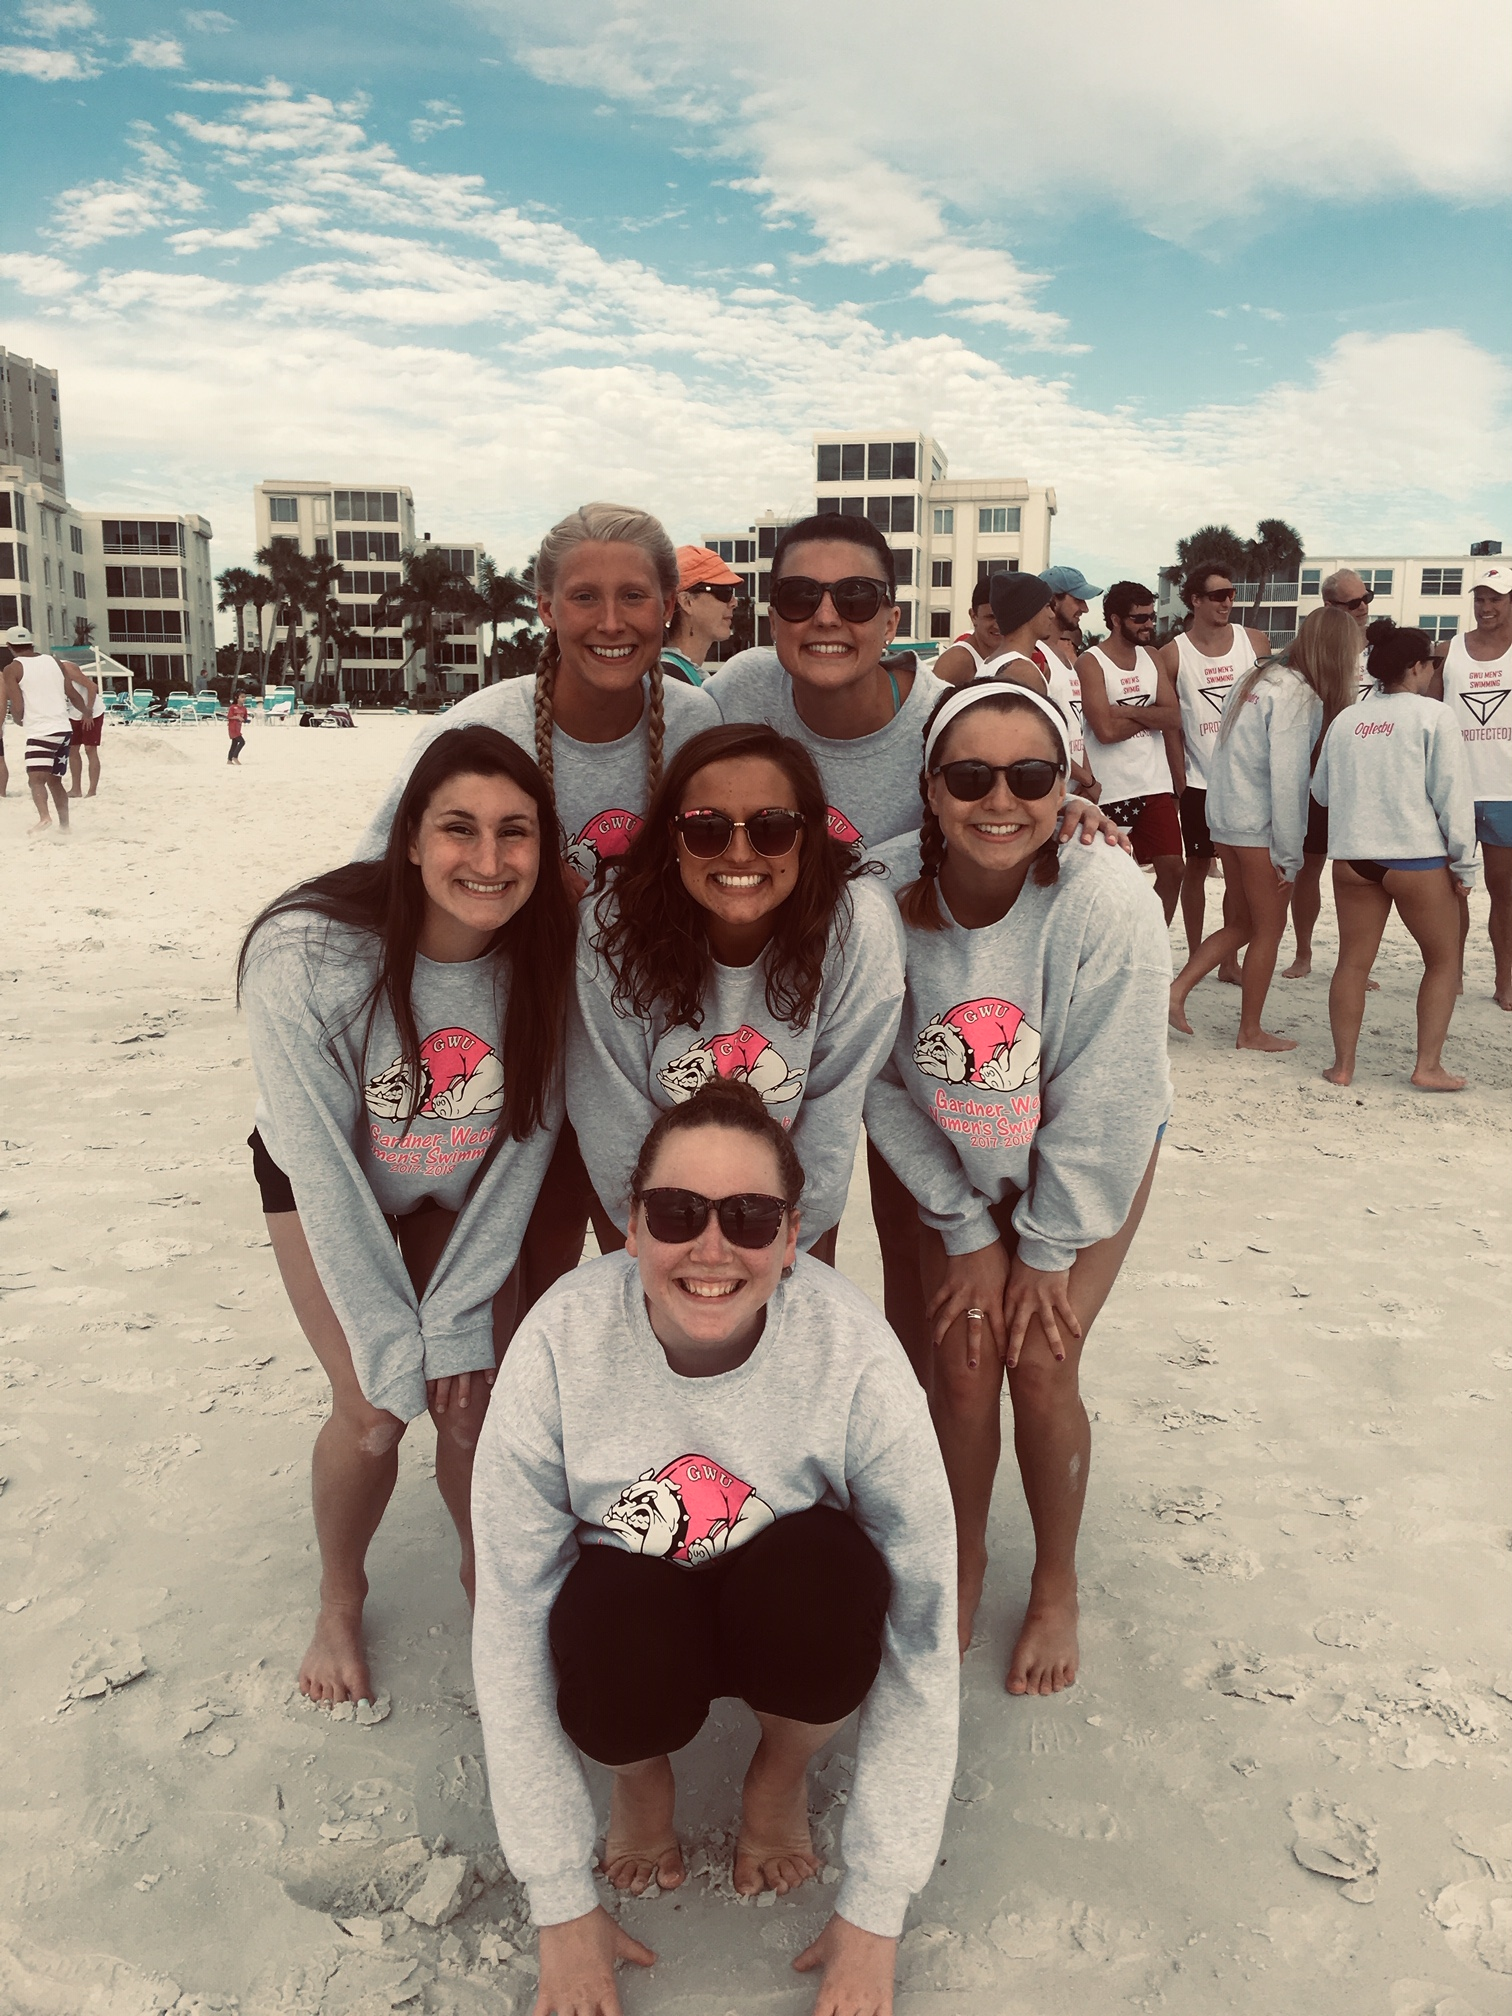 Morgan and other members of the GWU Women's Swim Team during their winter training in Sarasota, Florida.